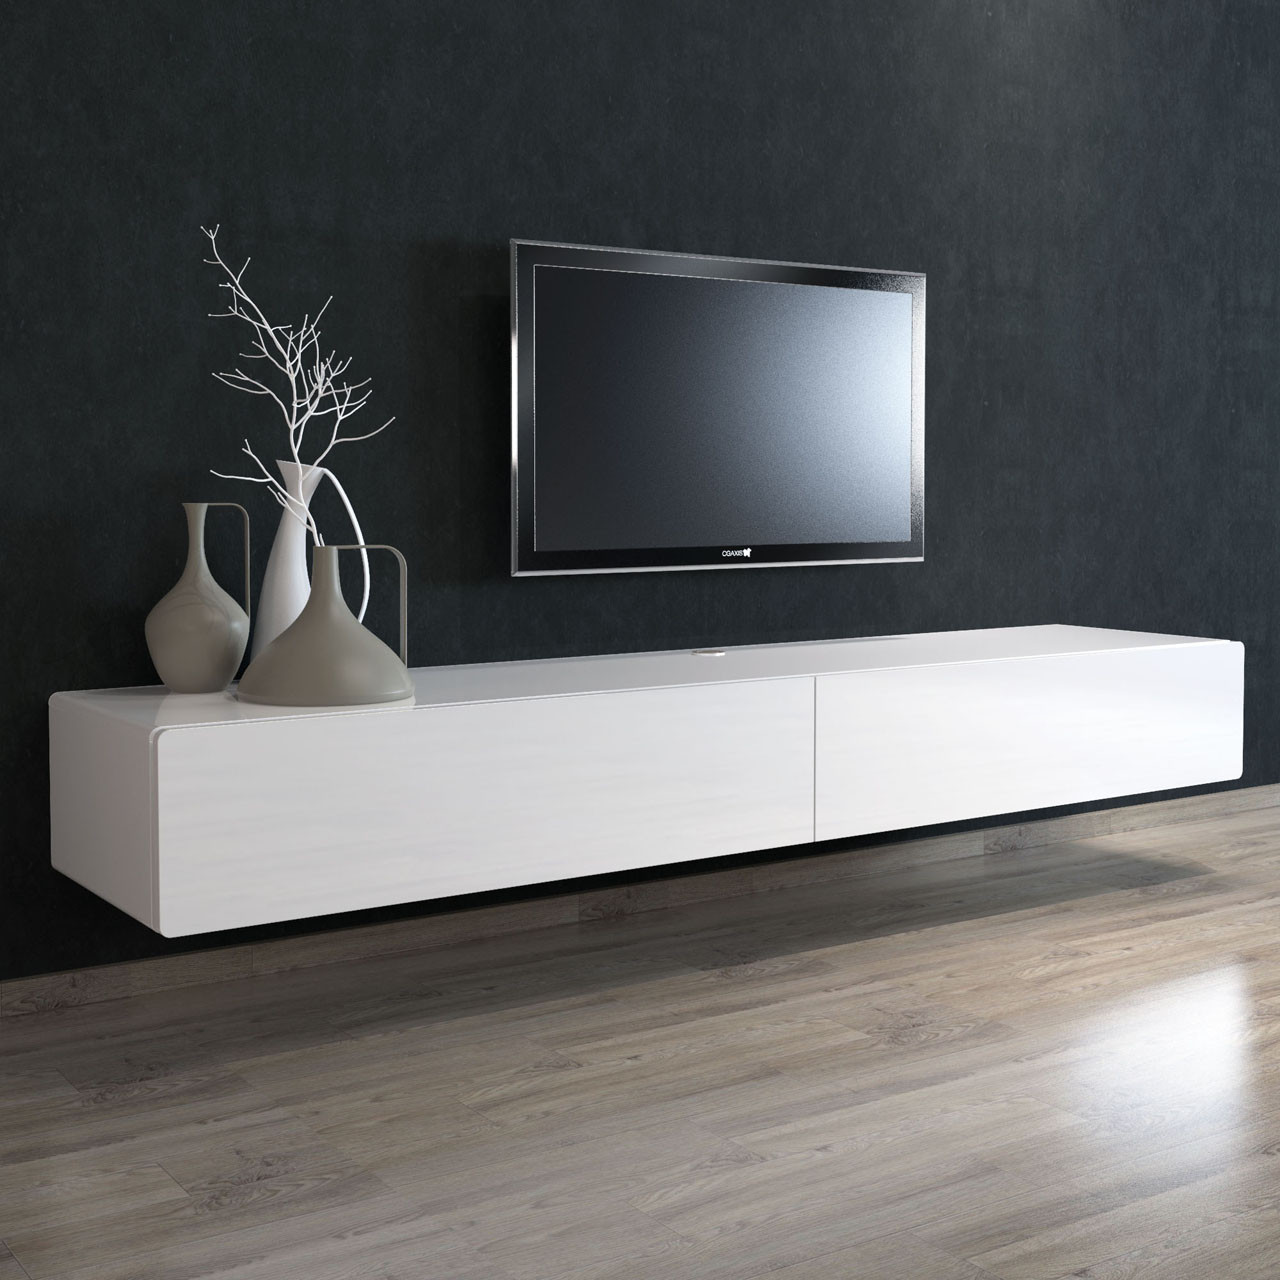 Brando Floating Entertainment Unit 220cm Cityside Furniture